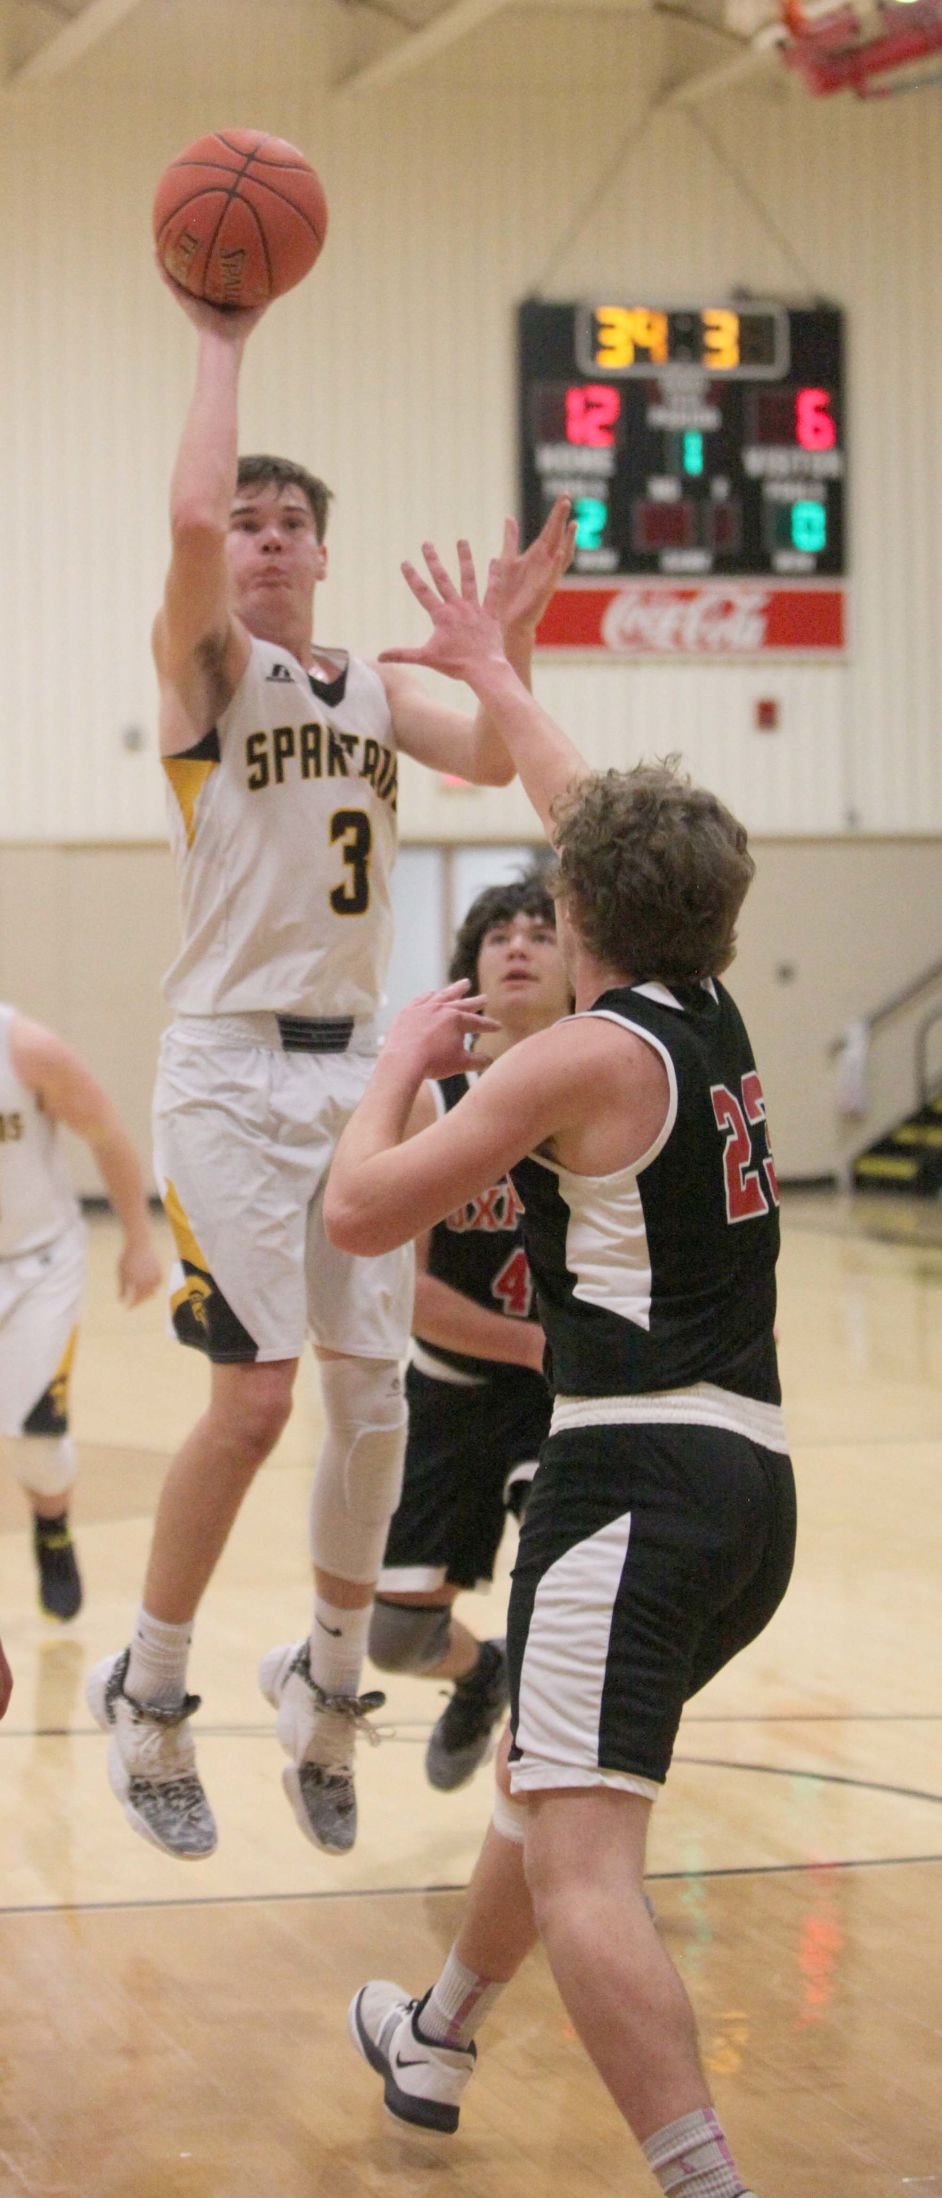 Top-seeded Spartans bury 12 shots from 3-point range to advance to semifinals